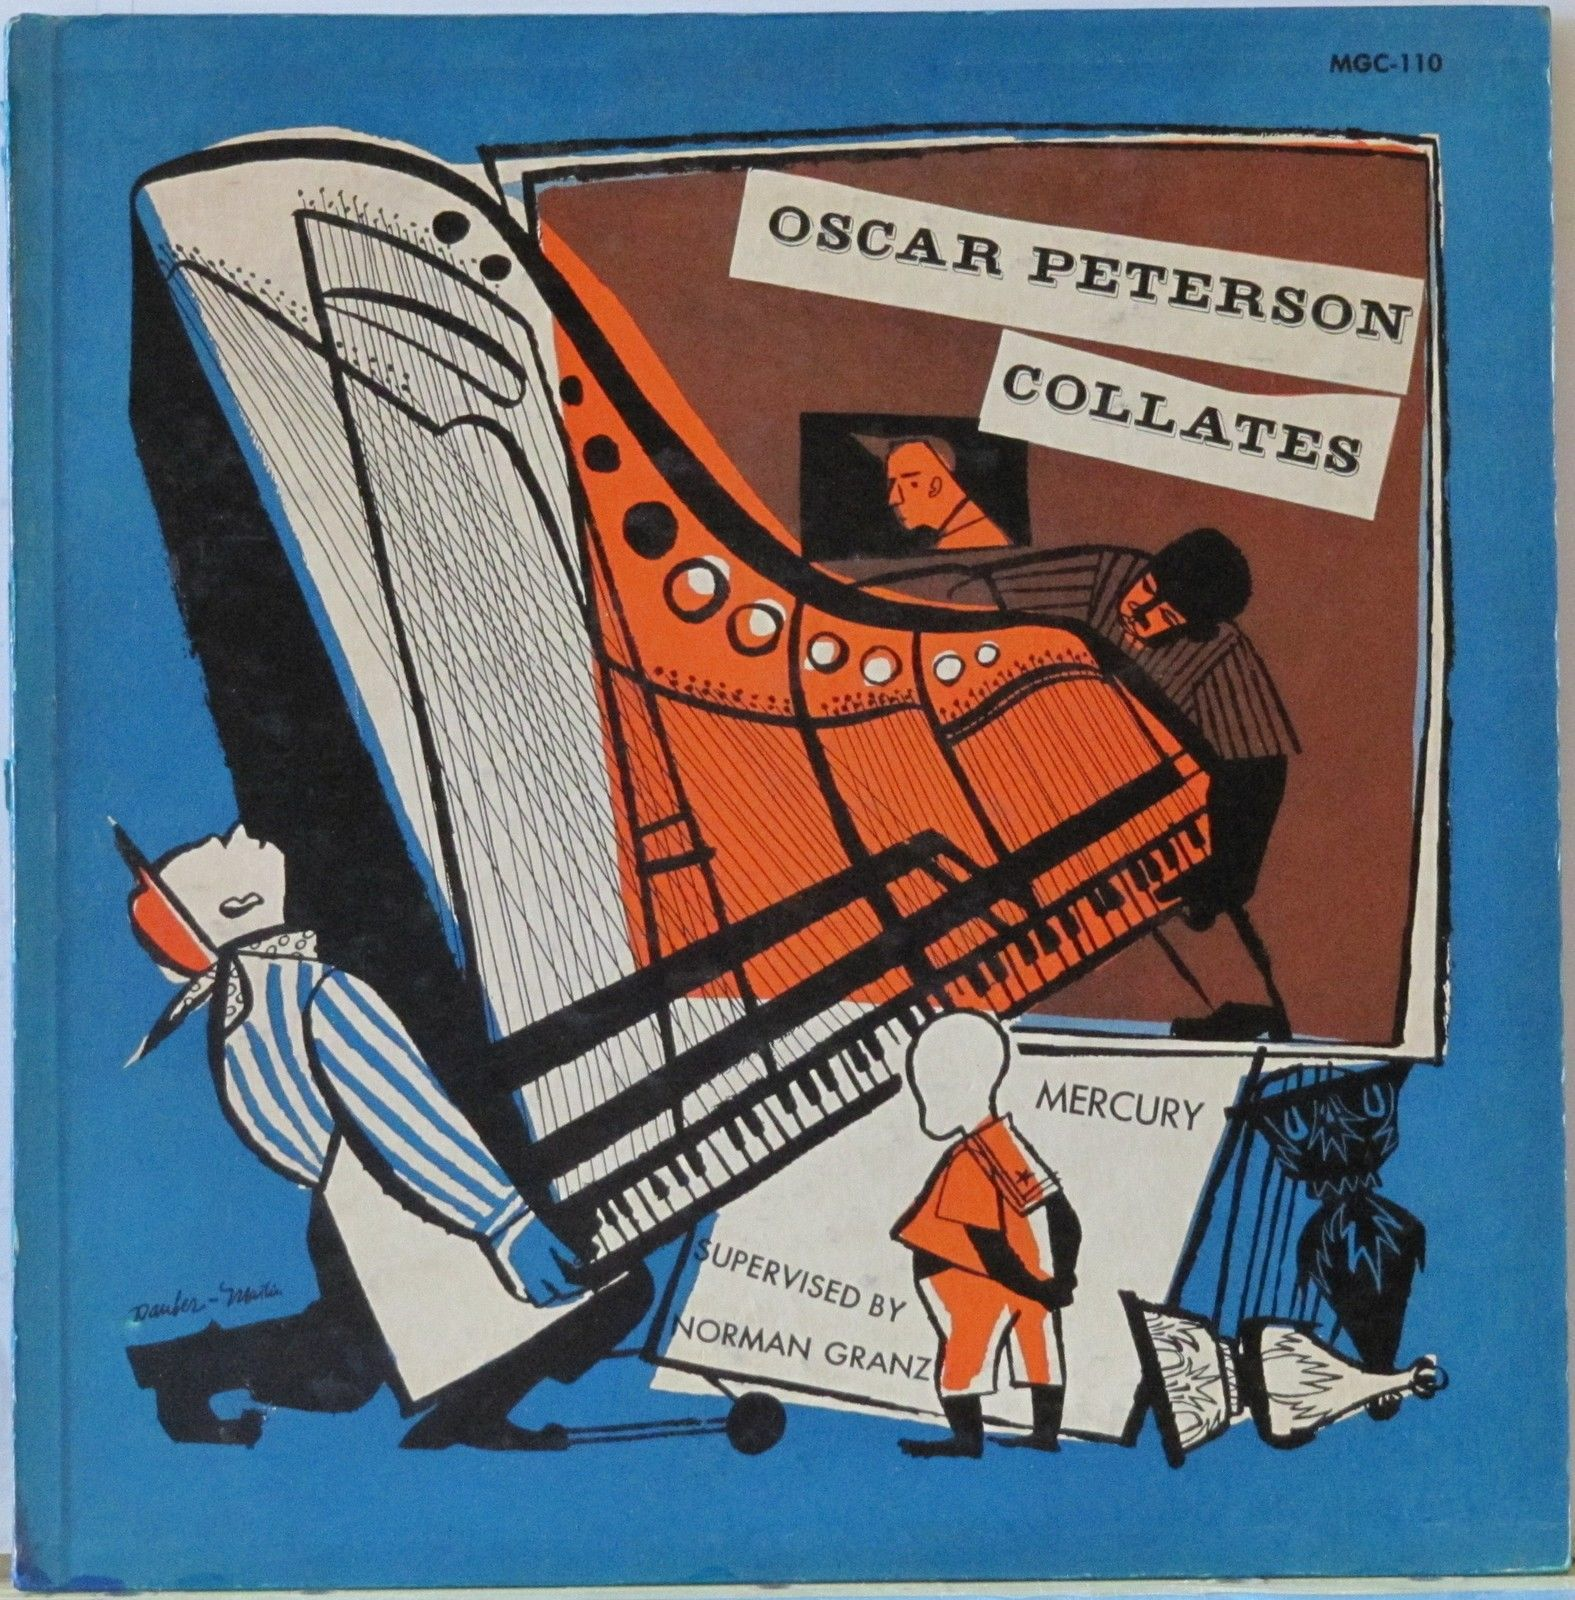 Oscar Peterson-Collates, label: Mercury MGC 110 (1952) Design: Eizabeth Dauber (One of four covers commisioned by Martin for Granz imitating and often mistaken for DSM's)